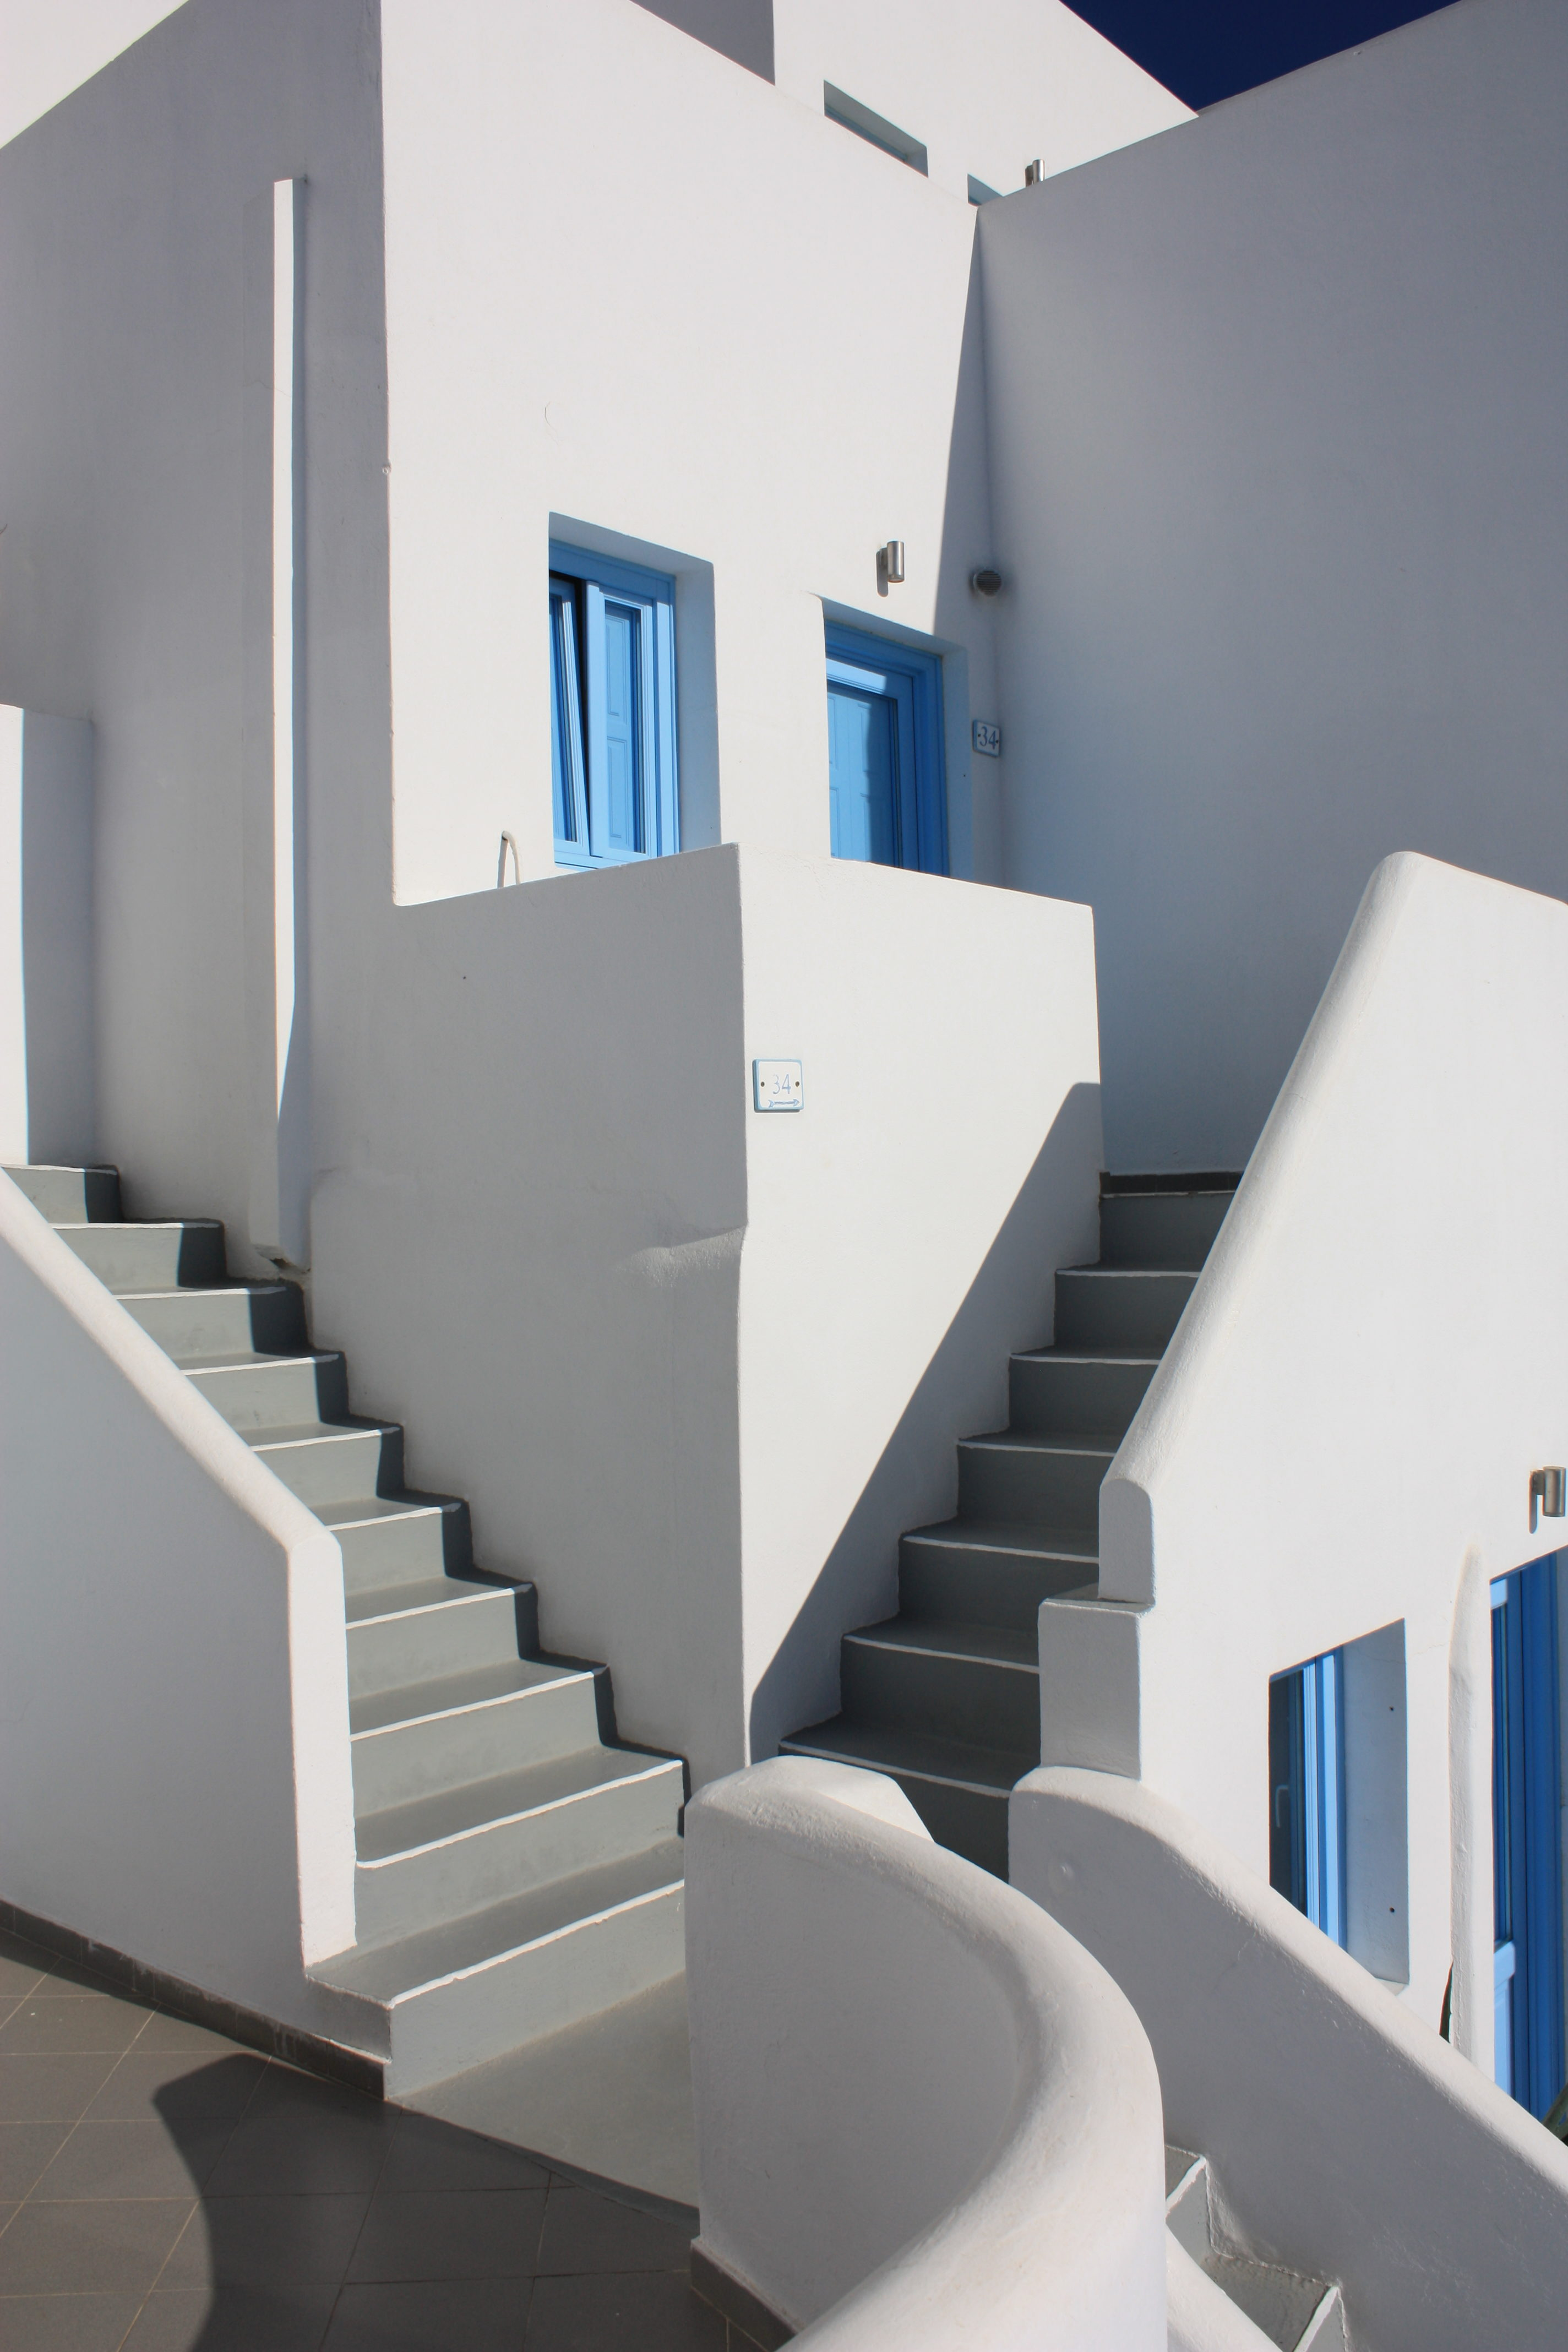 Angles, Forms, Shadows, with Blue and White, Santorini, Greece